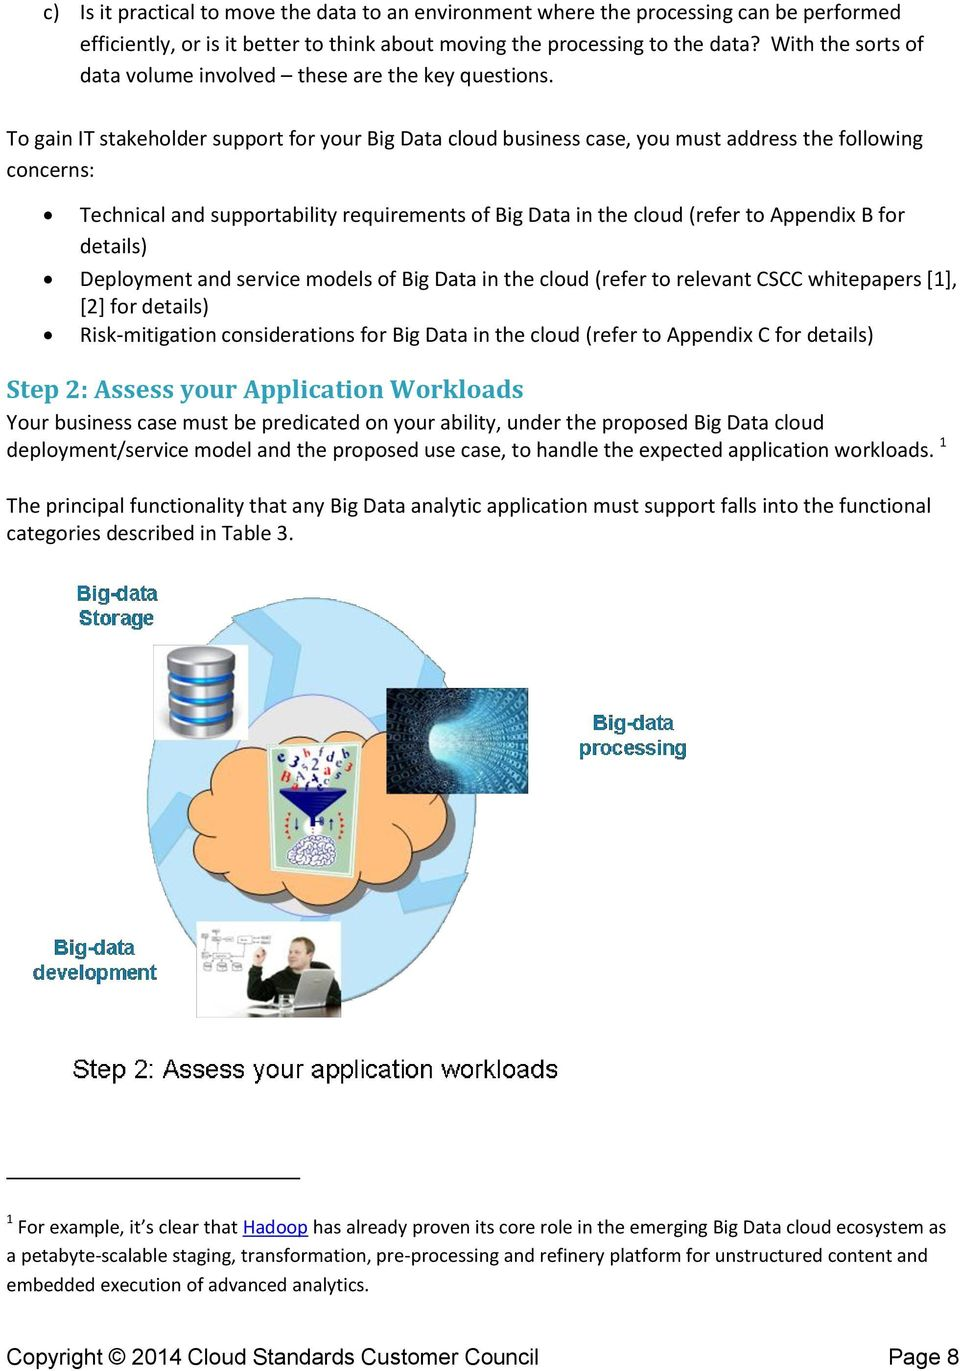 To gain IT stakeholder support for your Big Data cloud business case, you must address the following concerns: Technical and supportability requirements of Big Data in the cloud (refer to Appendix B